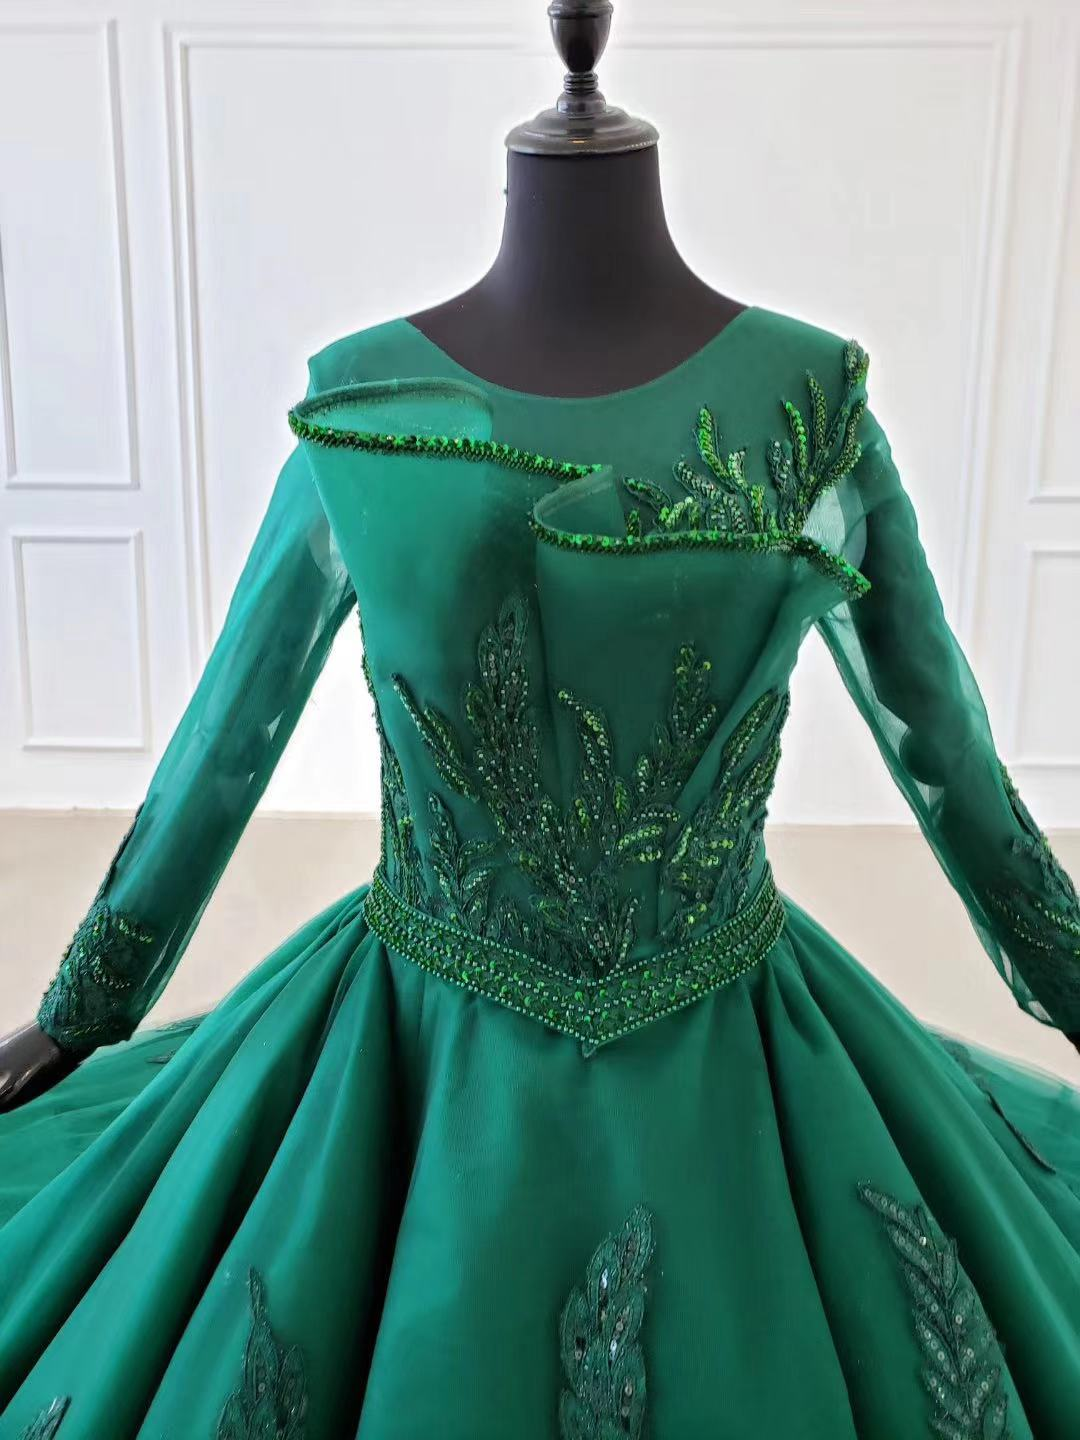 2020 New Green Satin Prom Dresses Prom Gown Scoop Ball Gown Sleeveless Evening Dress For Graduation Long Train Arabic Dresses - 5